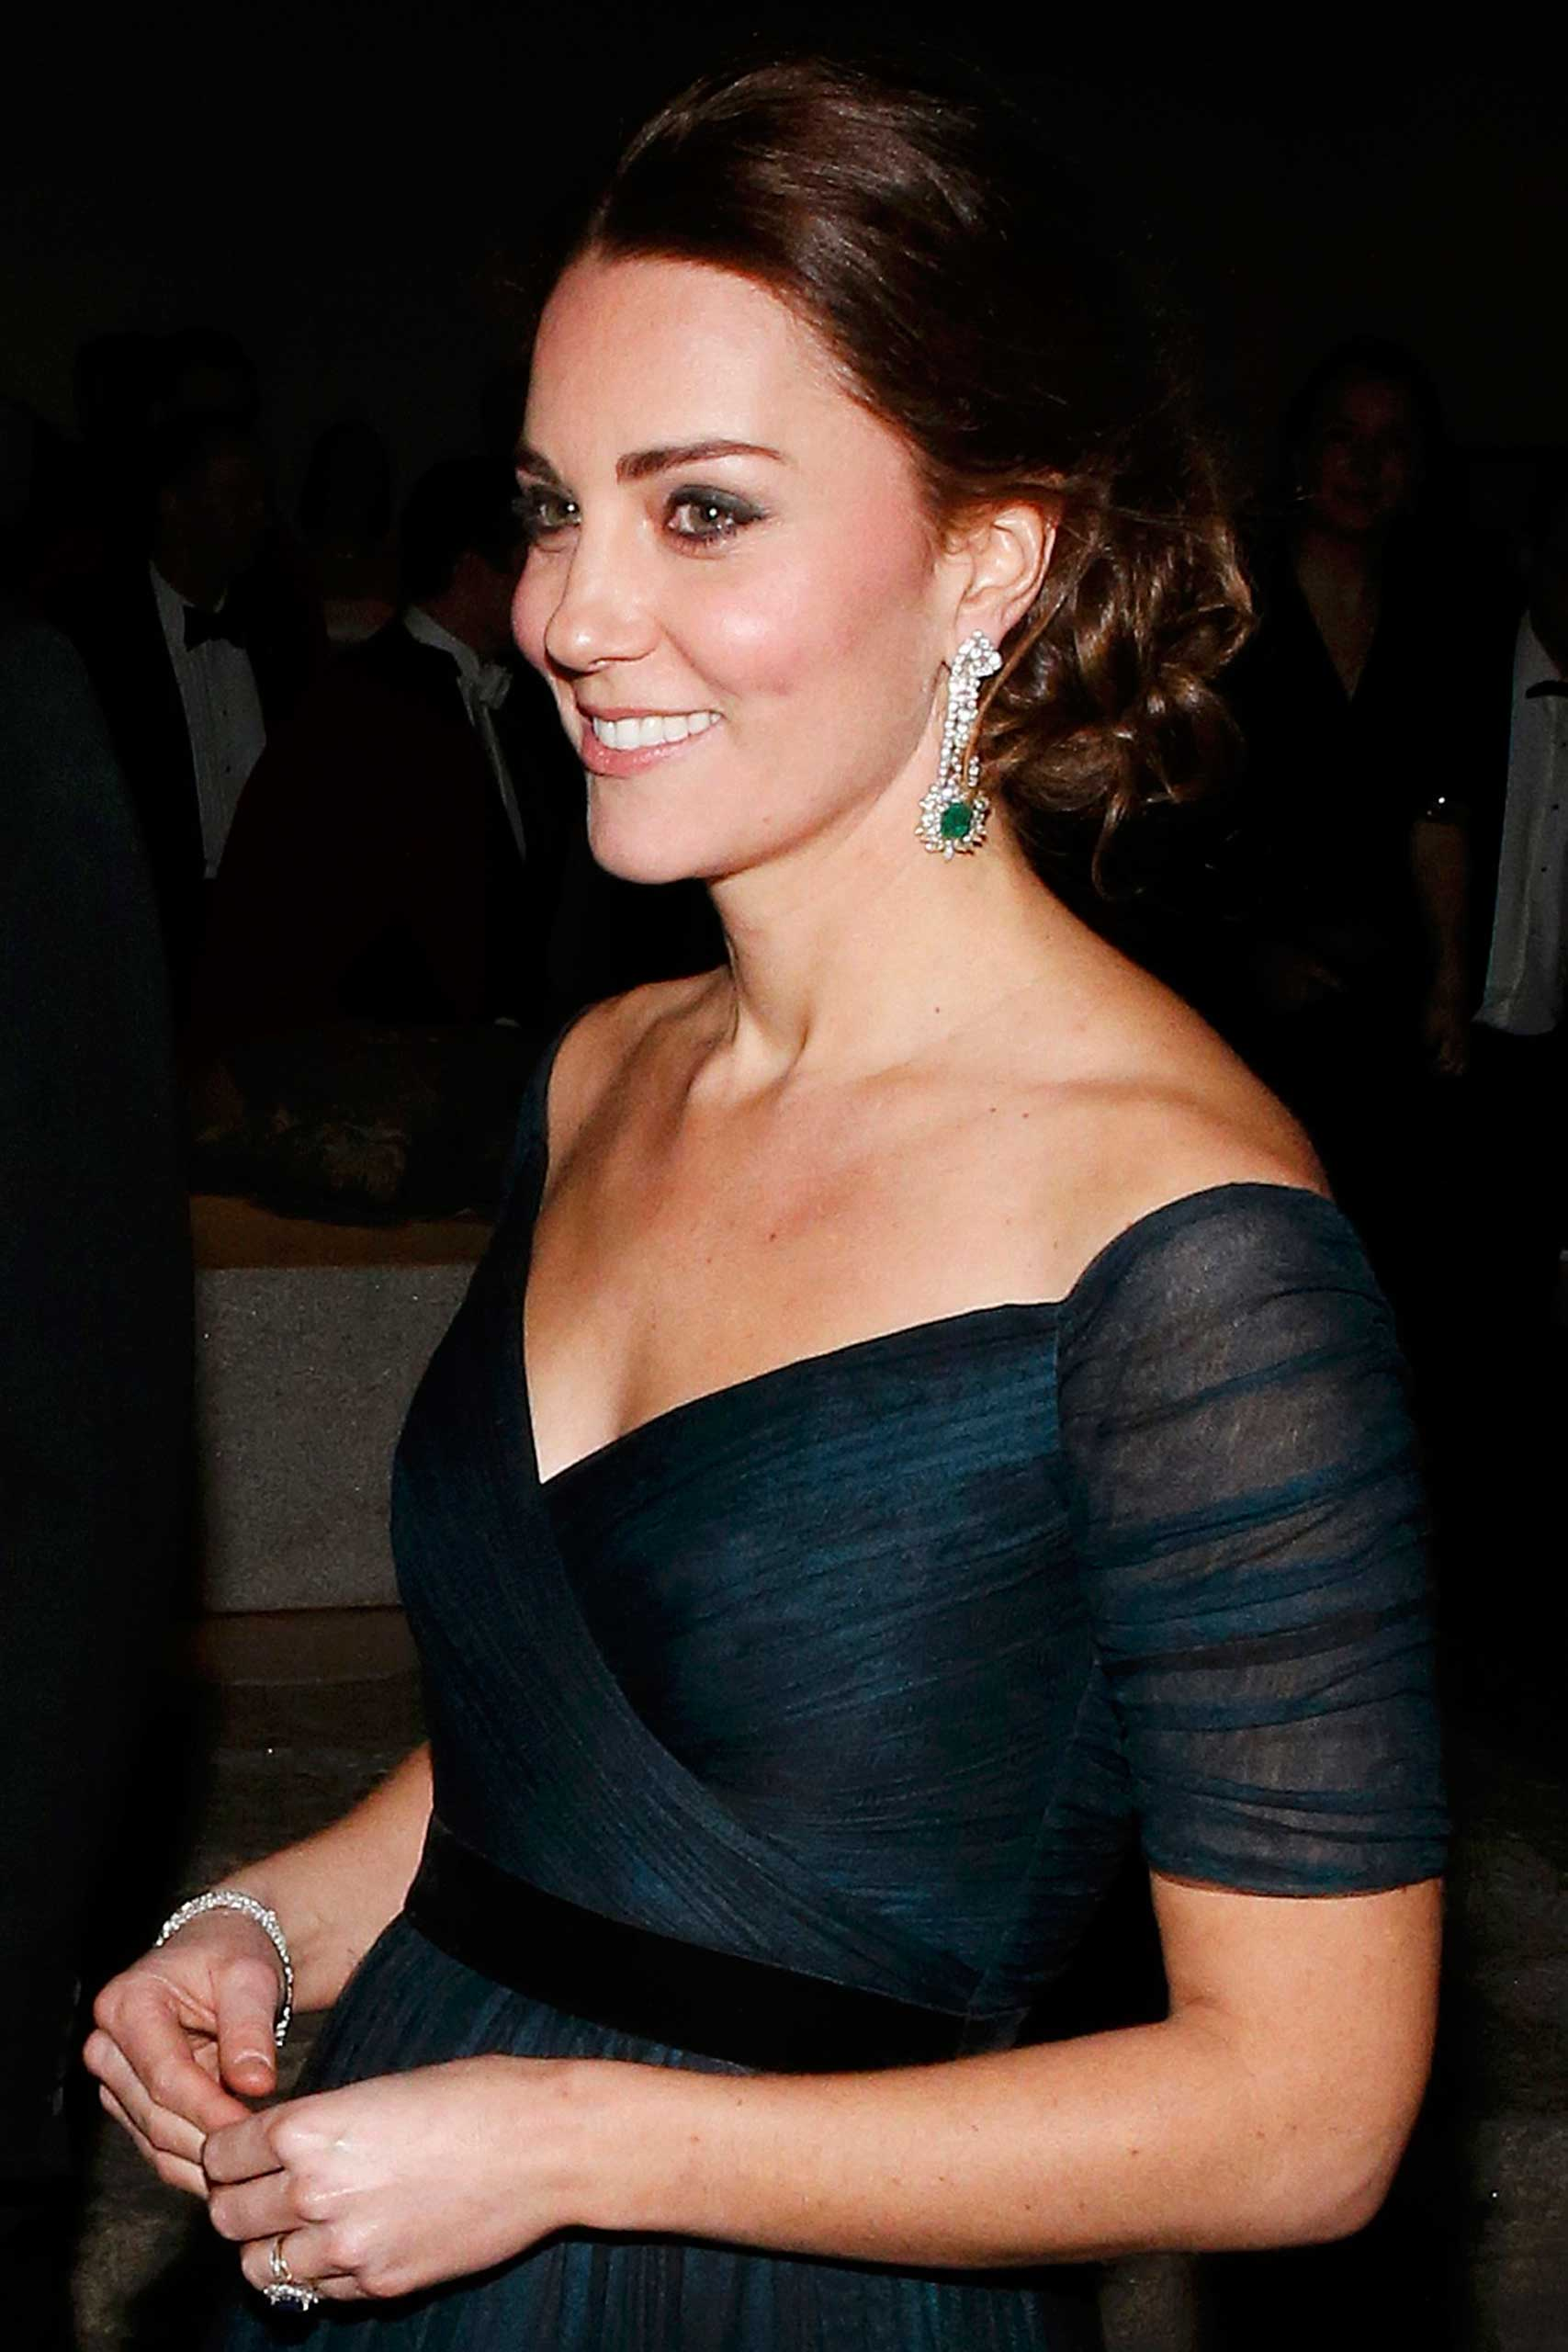 Catherine, Duchess of Cambridge arrives at the St. Andrews 600th Anniversary Dinner at The Metropolitan Museum of Art in New York on Dec. 9, 2014.